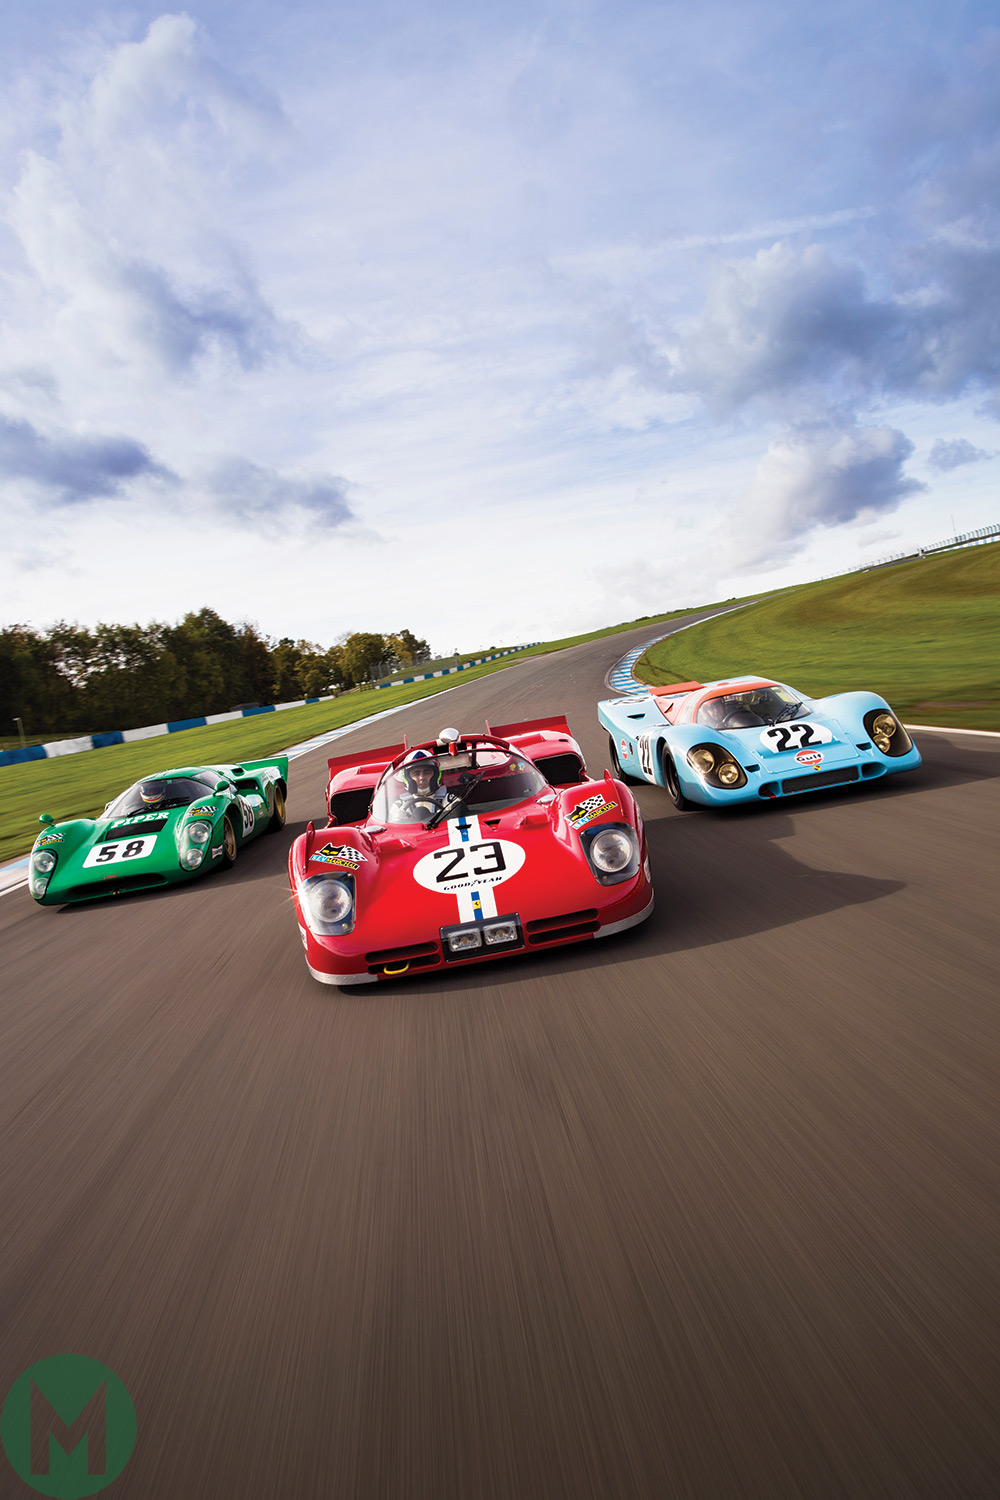 Porsche 917, Ferrari 512, Lola T70 driven by Dario Franchitti